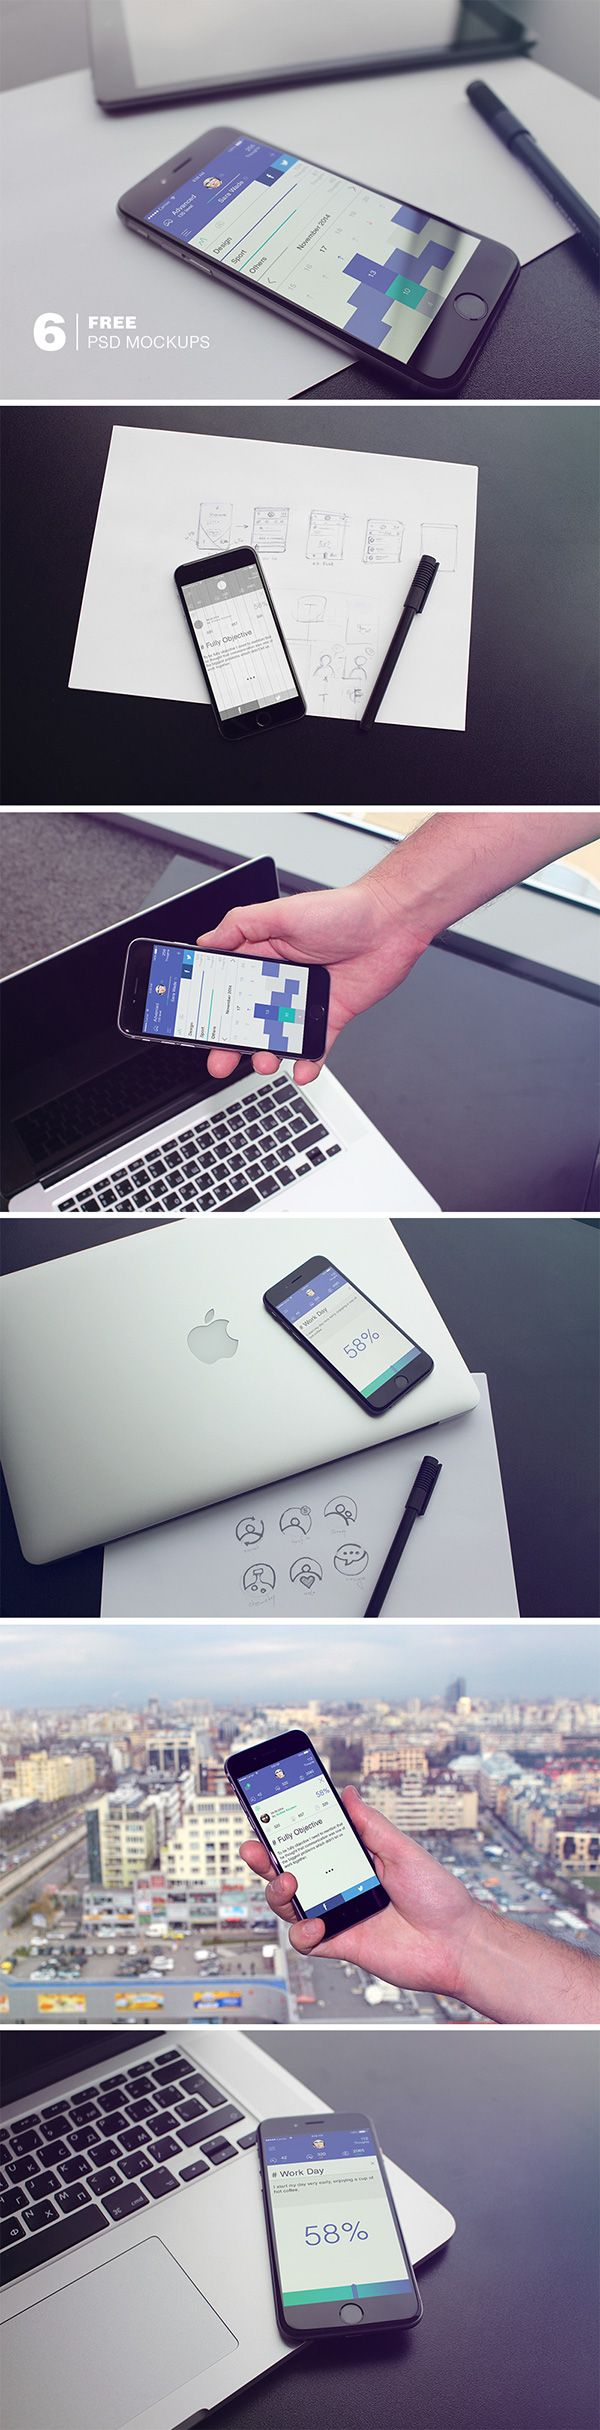 Create a neat presentation for your latest mobile app or theme with this great collection of iPhone 6 mock-ups...